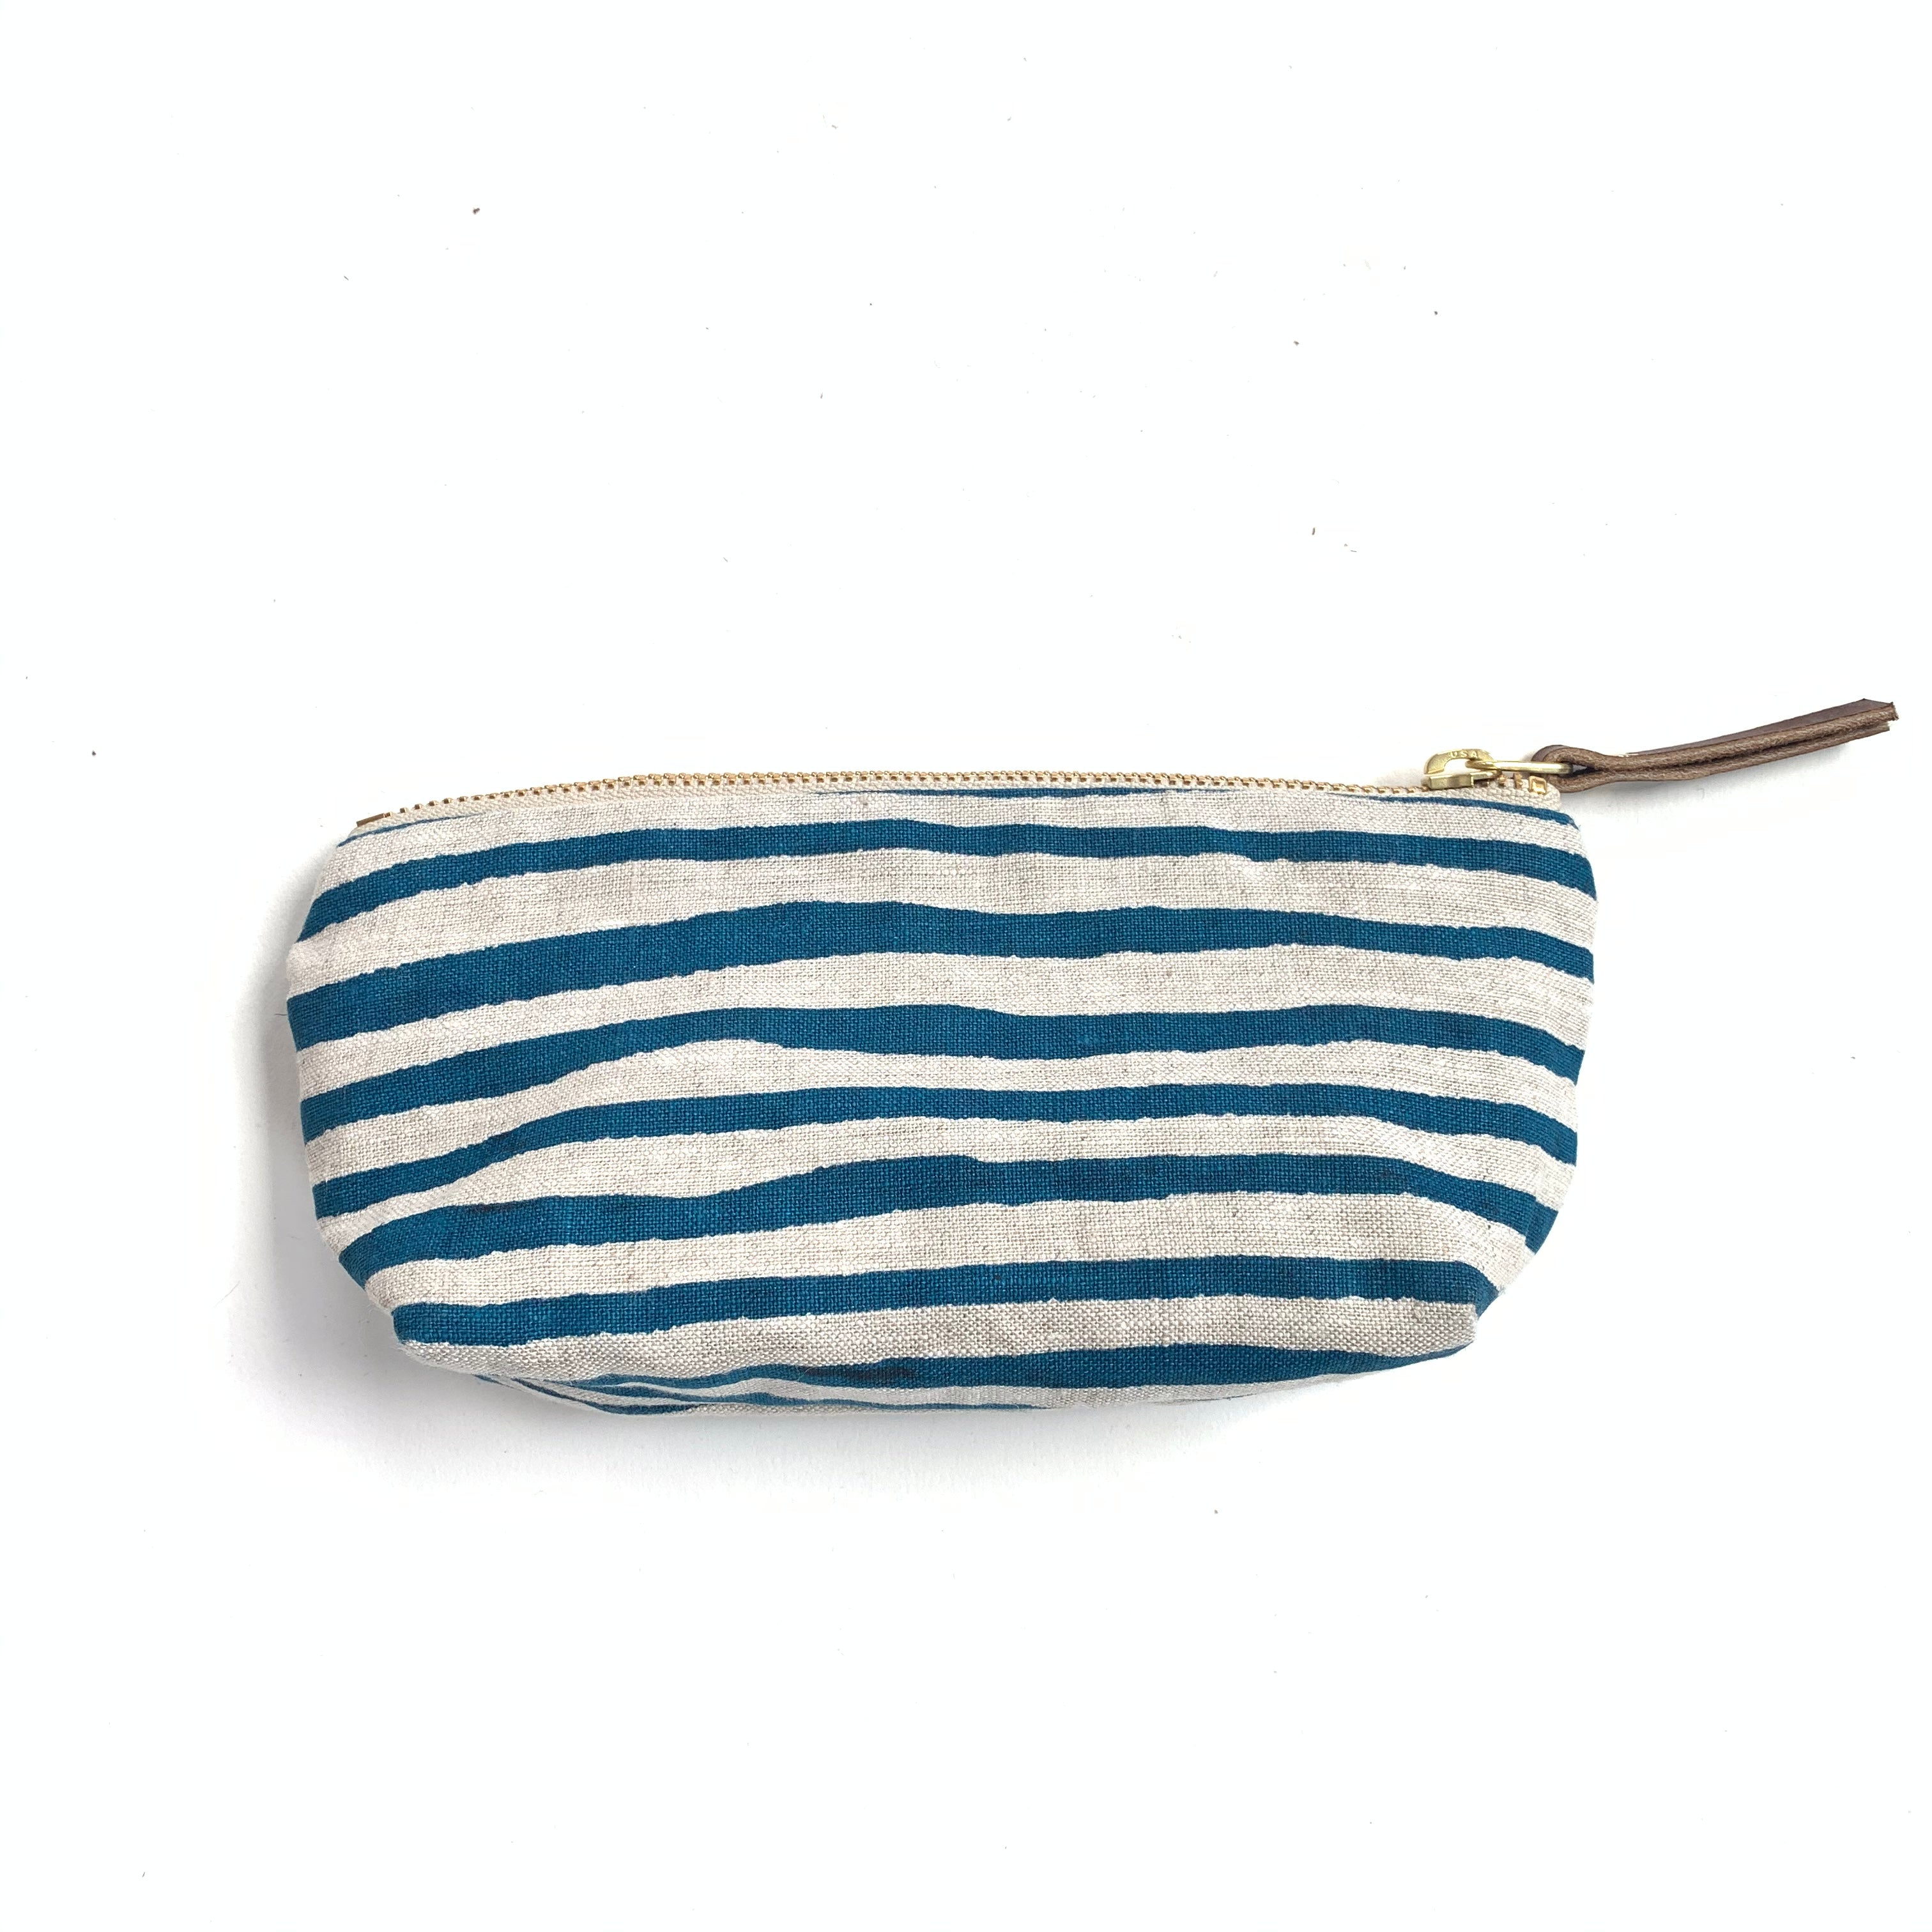 Made in Canada oblong pouch with blue and white tahle stripes.